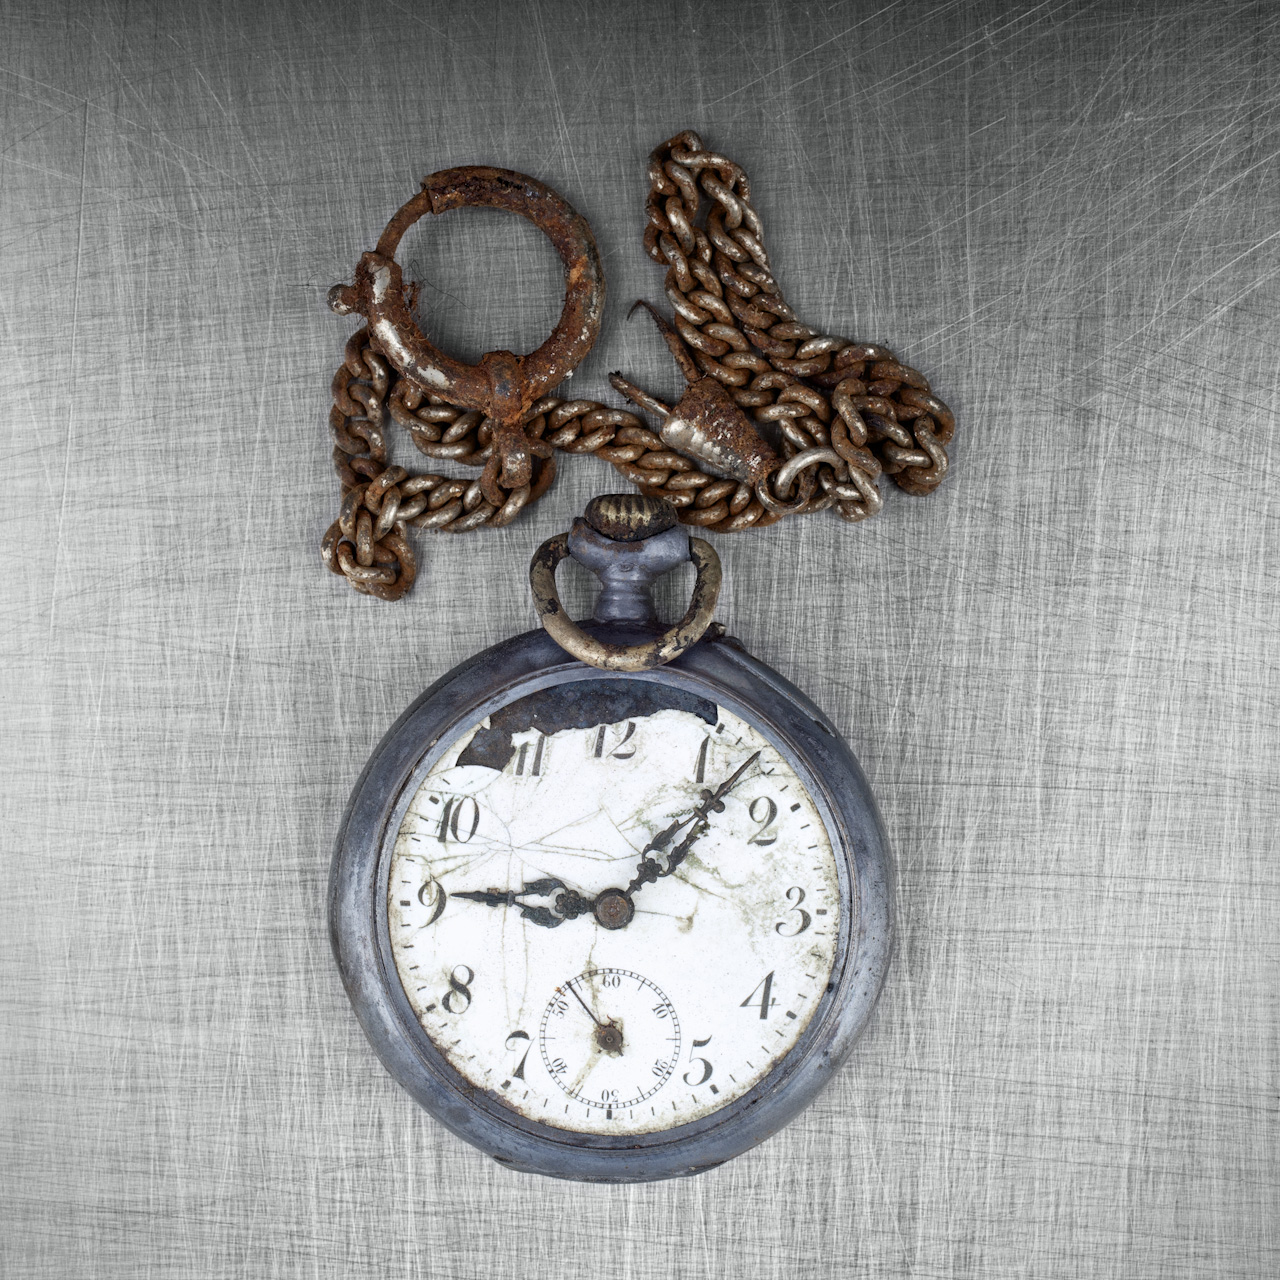 From Quest for Identity. A watch from amongst the personal belongings recovered from mass graves, lying on a forensics table. These items were carried by people as they fled from the Serb Army, or when they were taken for execution. Personal belongings are still being recovered from countless mass graves across Bosnia and Herzegovina and are used as evidence in ongoing trials for war crimes and in the ongoing identification process of their owners. Photo: Ziyah Gafić.